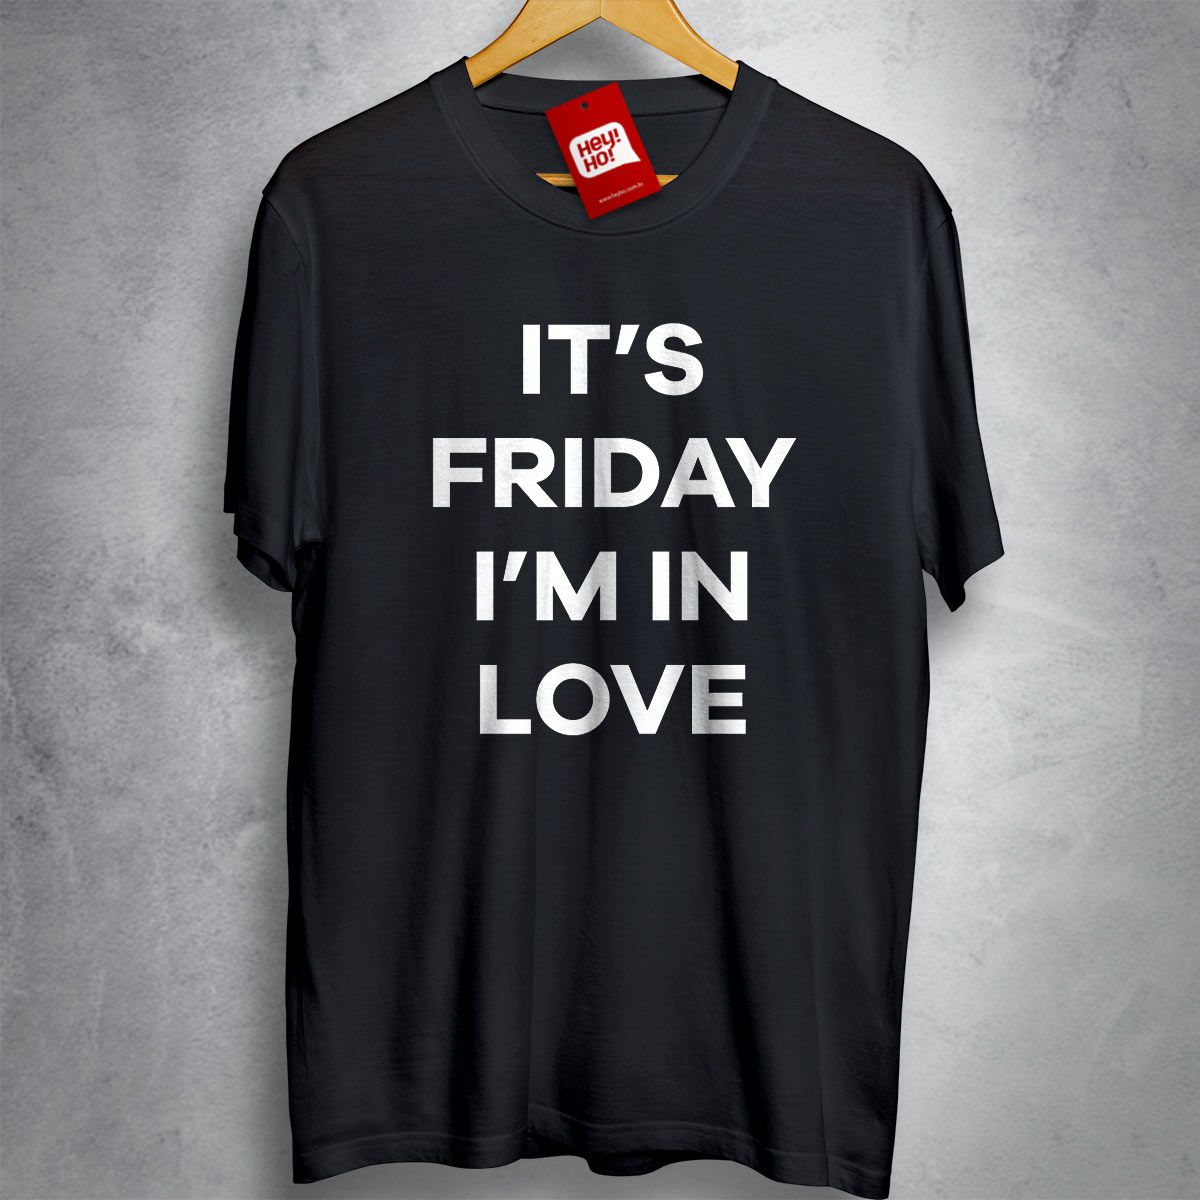 THE CURE - It's Friday I'm in love